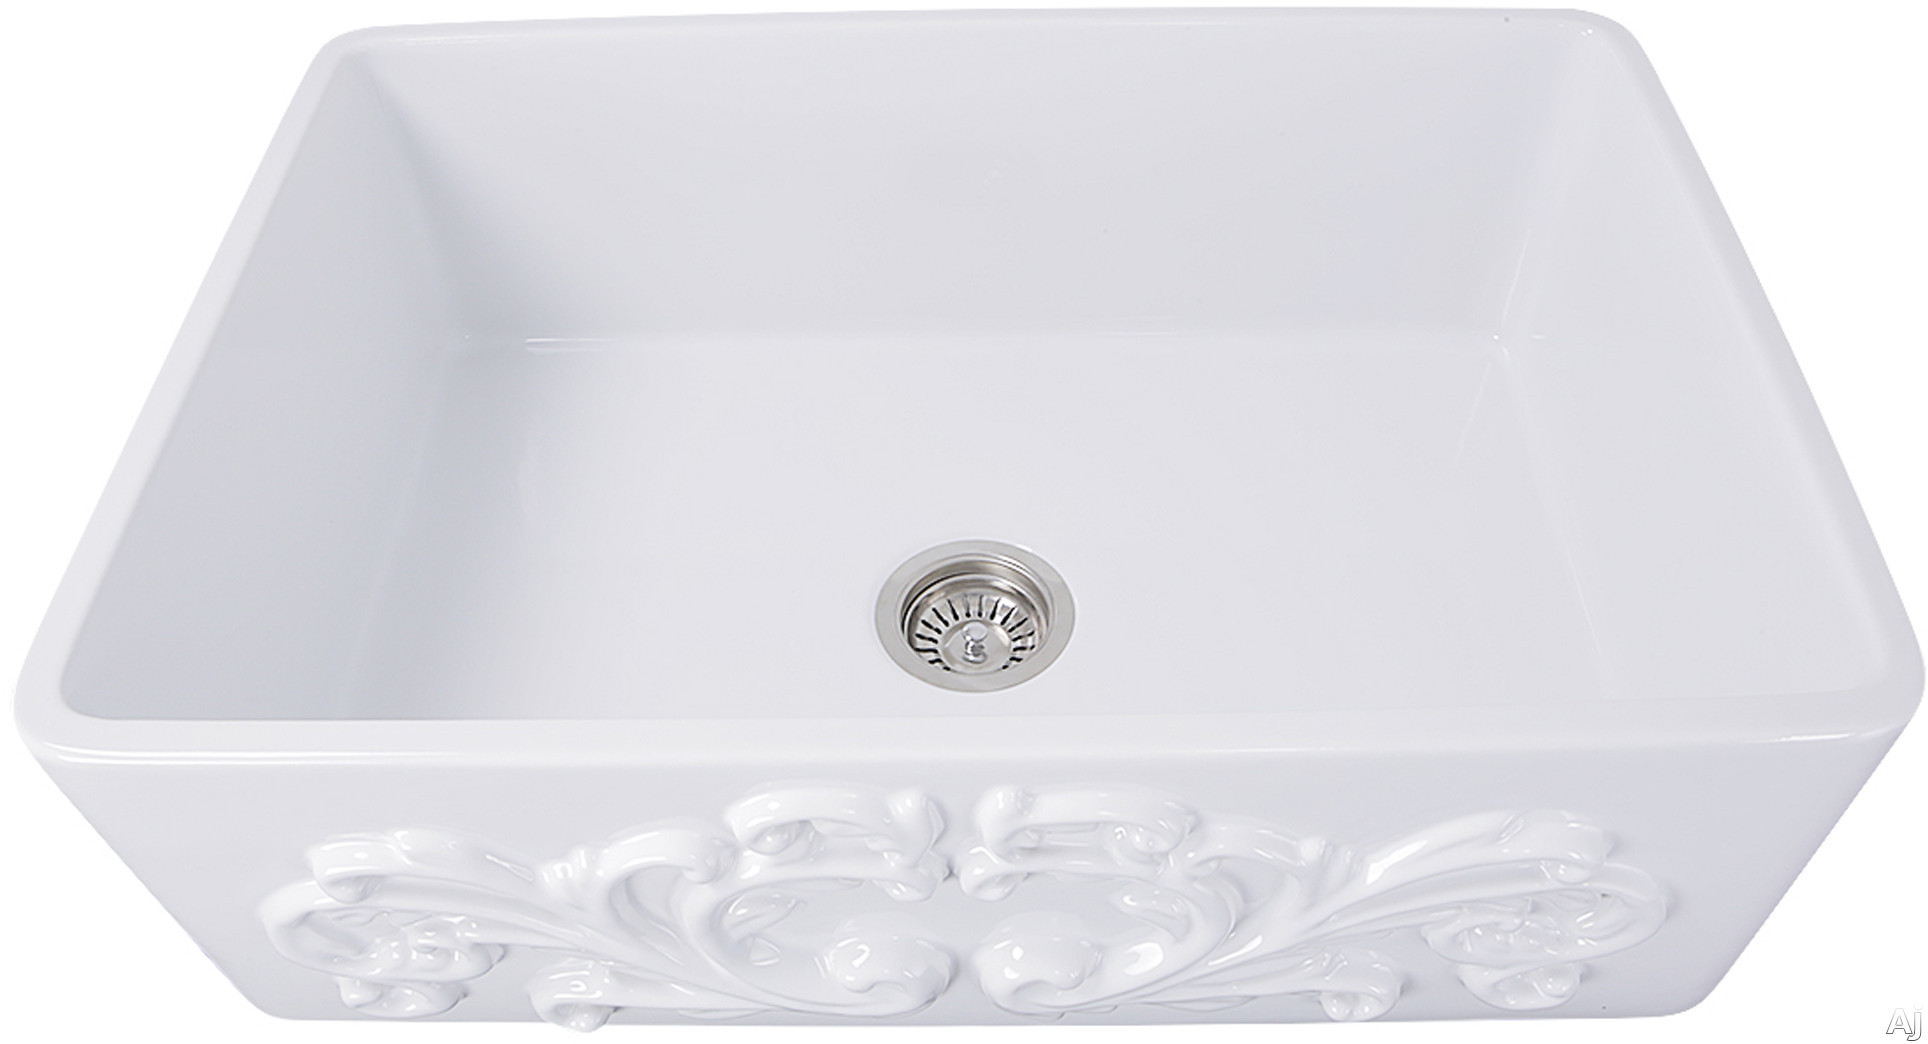 Nantucket Sinks Vineyard Collection FCFS3320SFILIGREE 33 Inch Single Bowl Farmhouse Fireclay Sink with Solid Fireclay Construction, Scratch Resistant and Filigree Apron